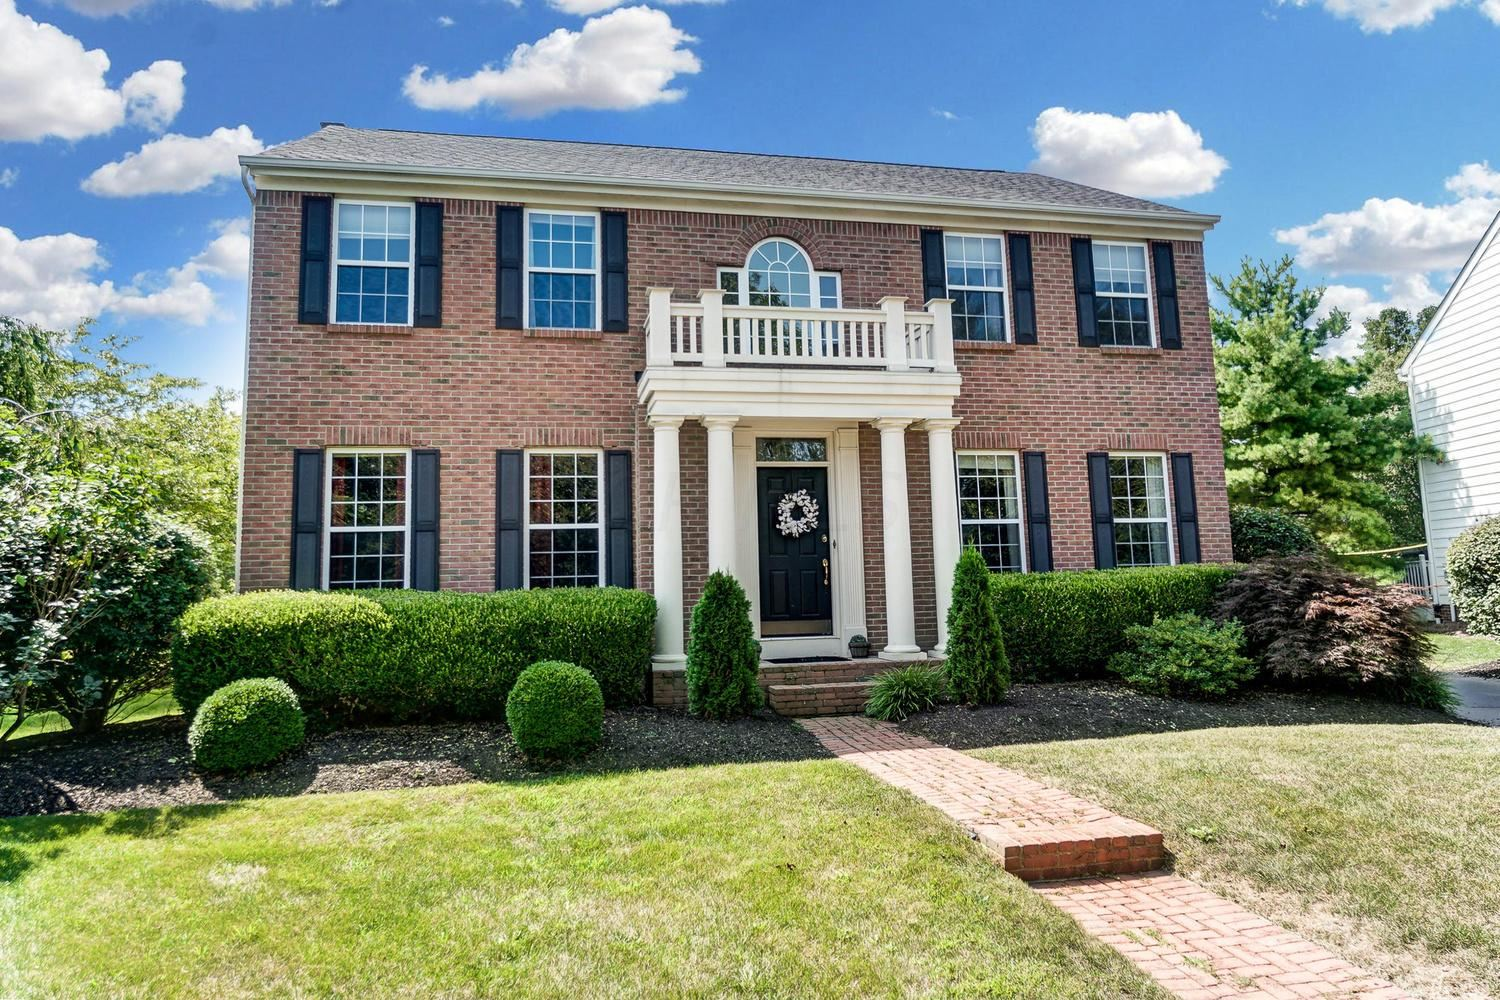 Photo of 187 Chasely Circle, Powell, OH 43065 (MLS # 221029062)